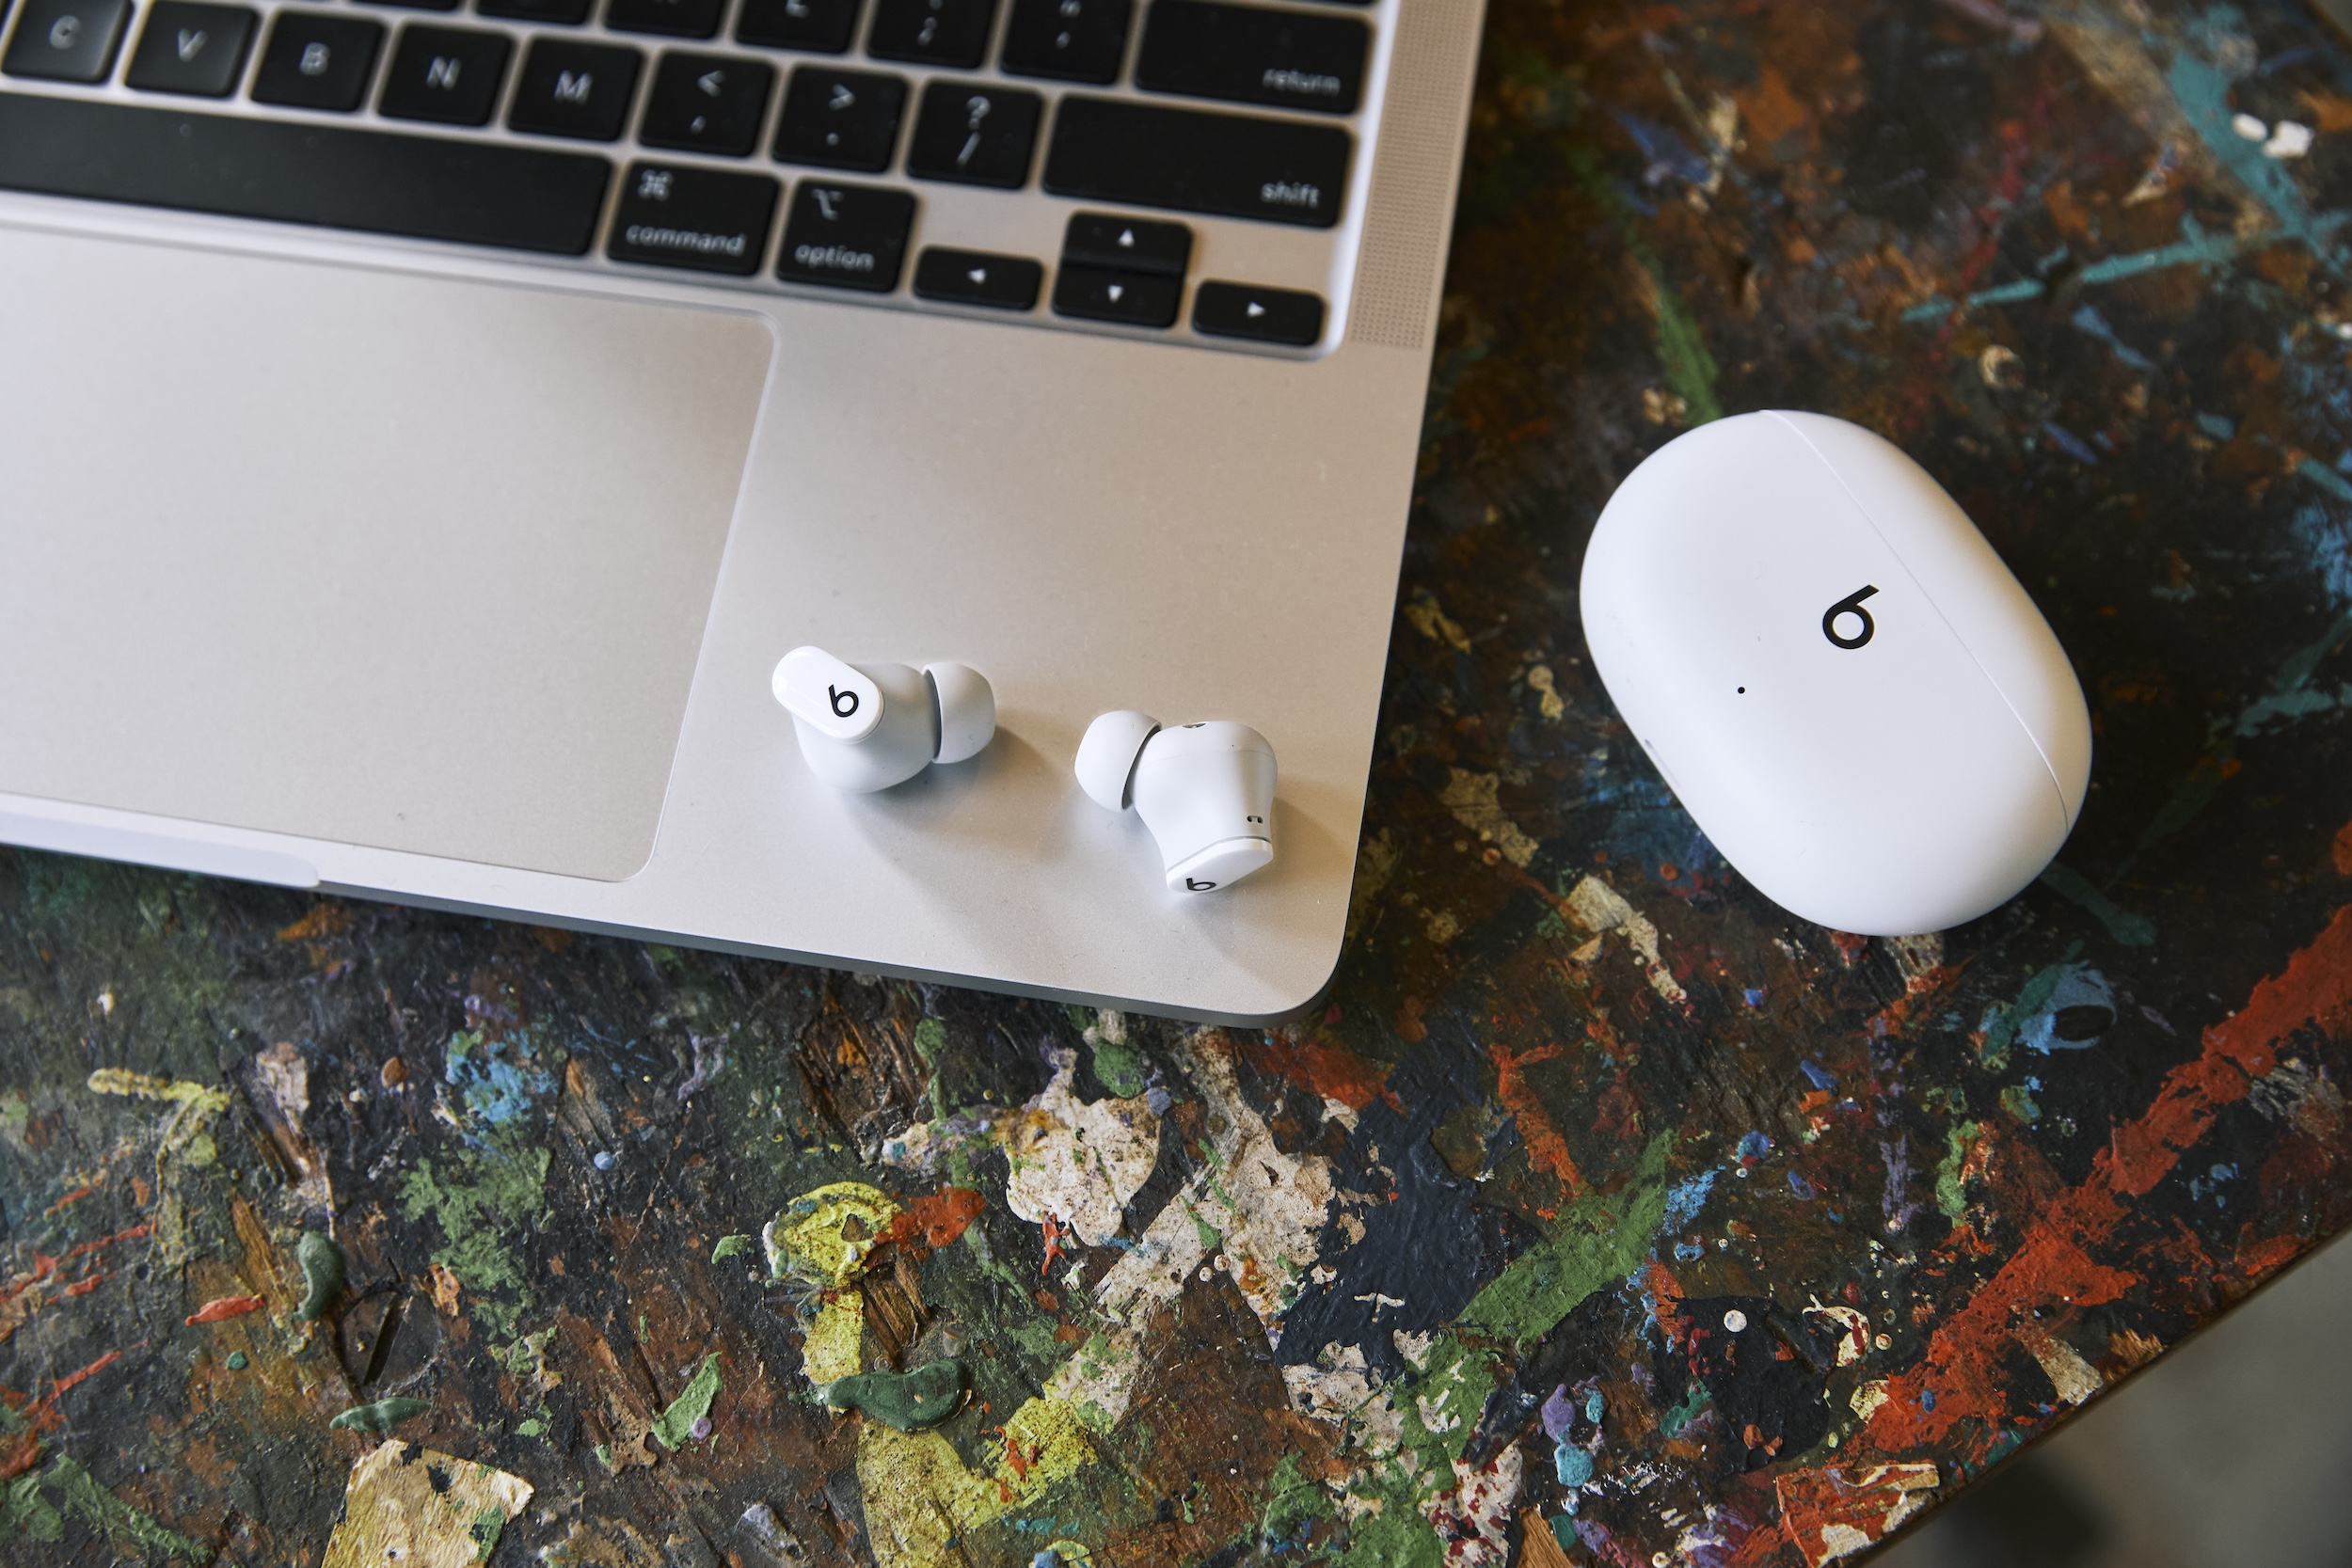 Apple drops the Beats Studio Buds with ANC, IPX4 rating, and the sky is the limit from there